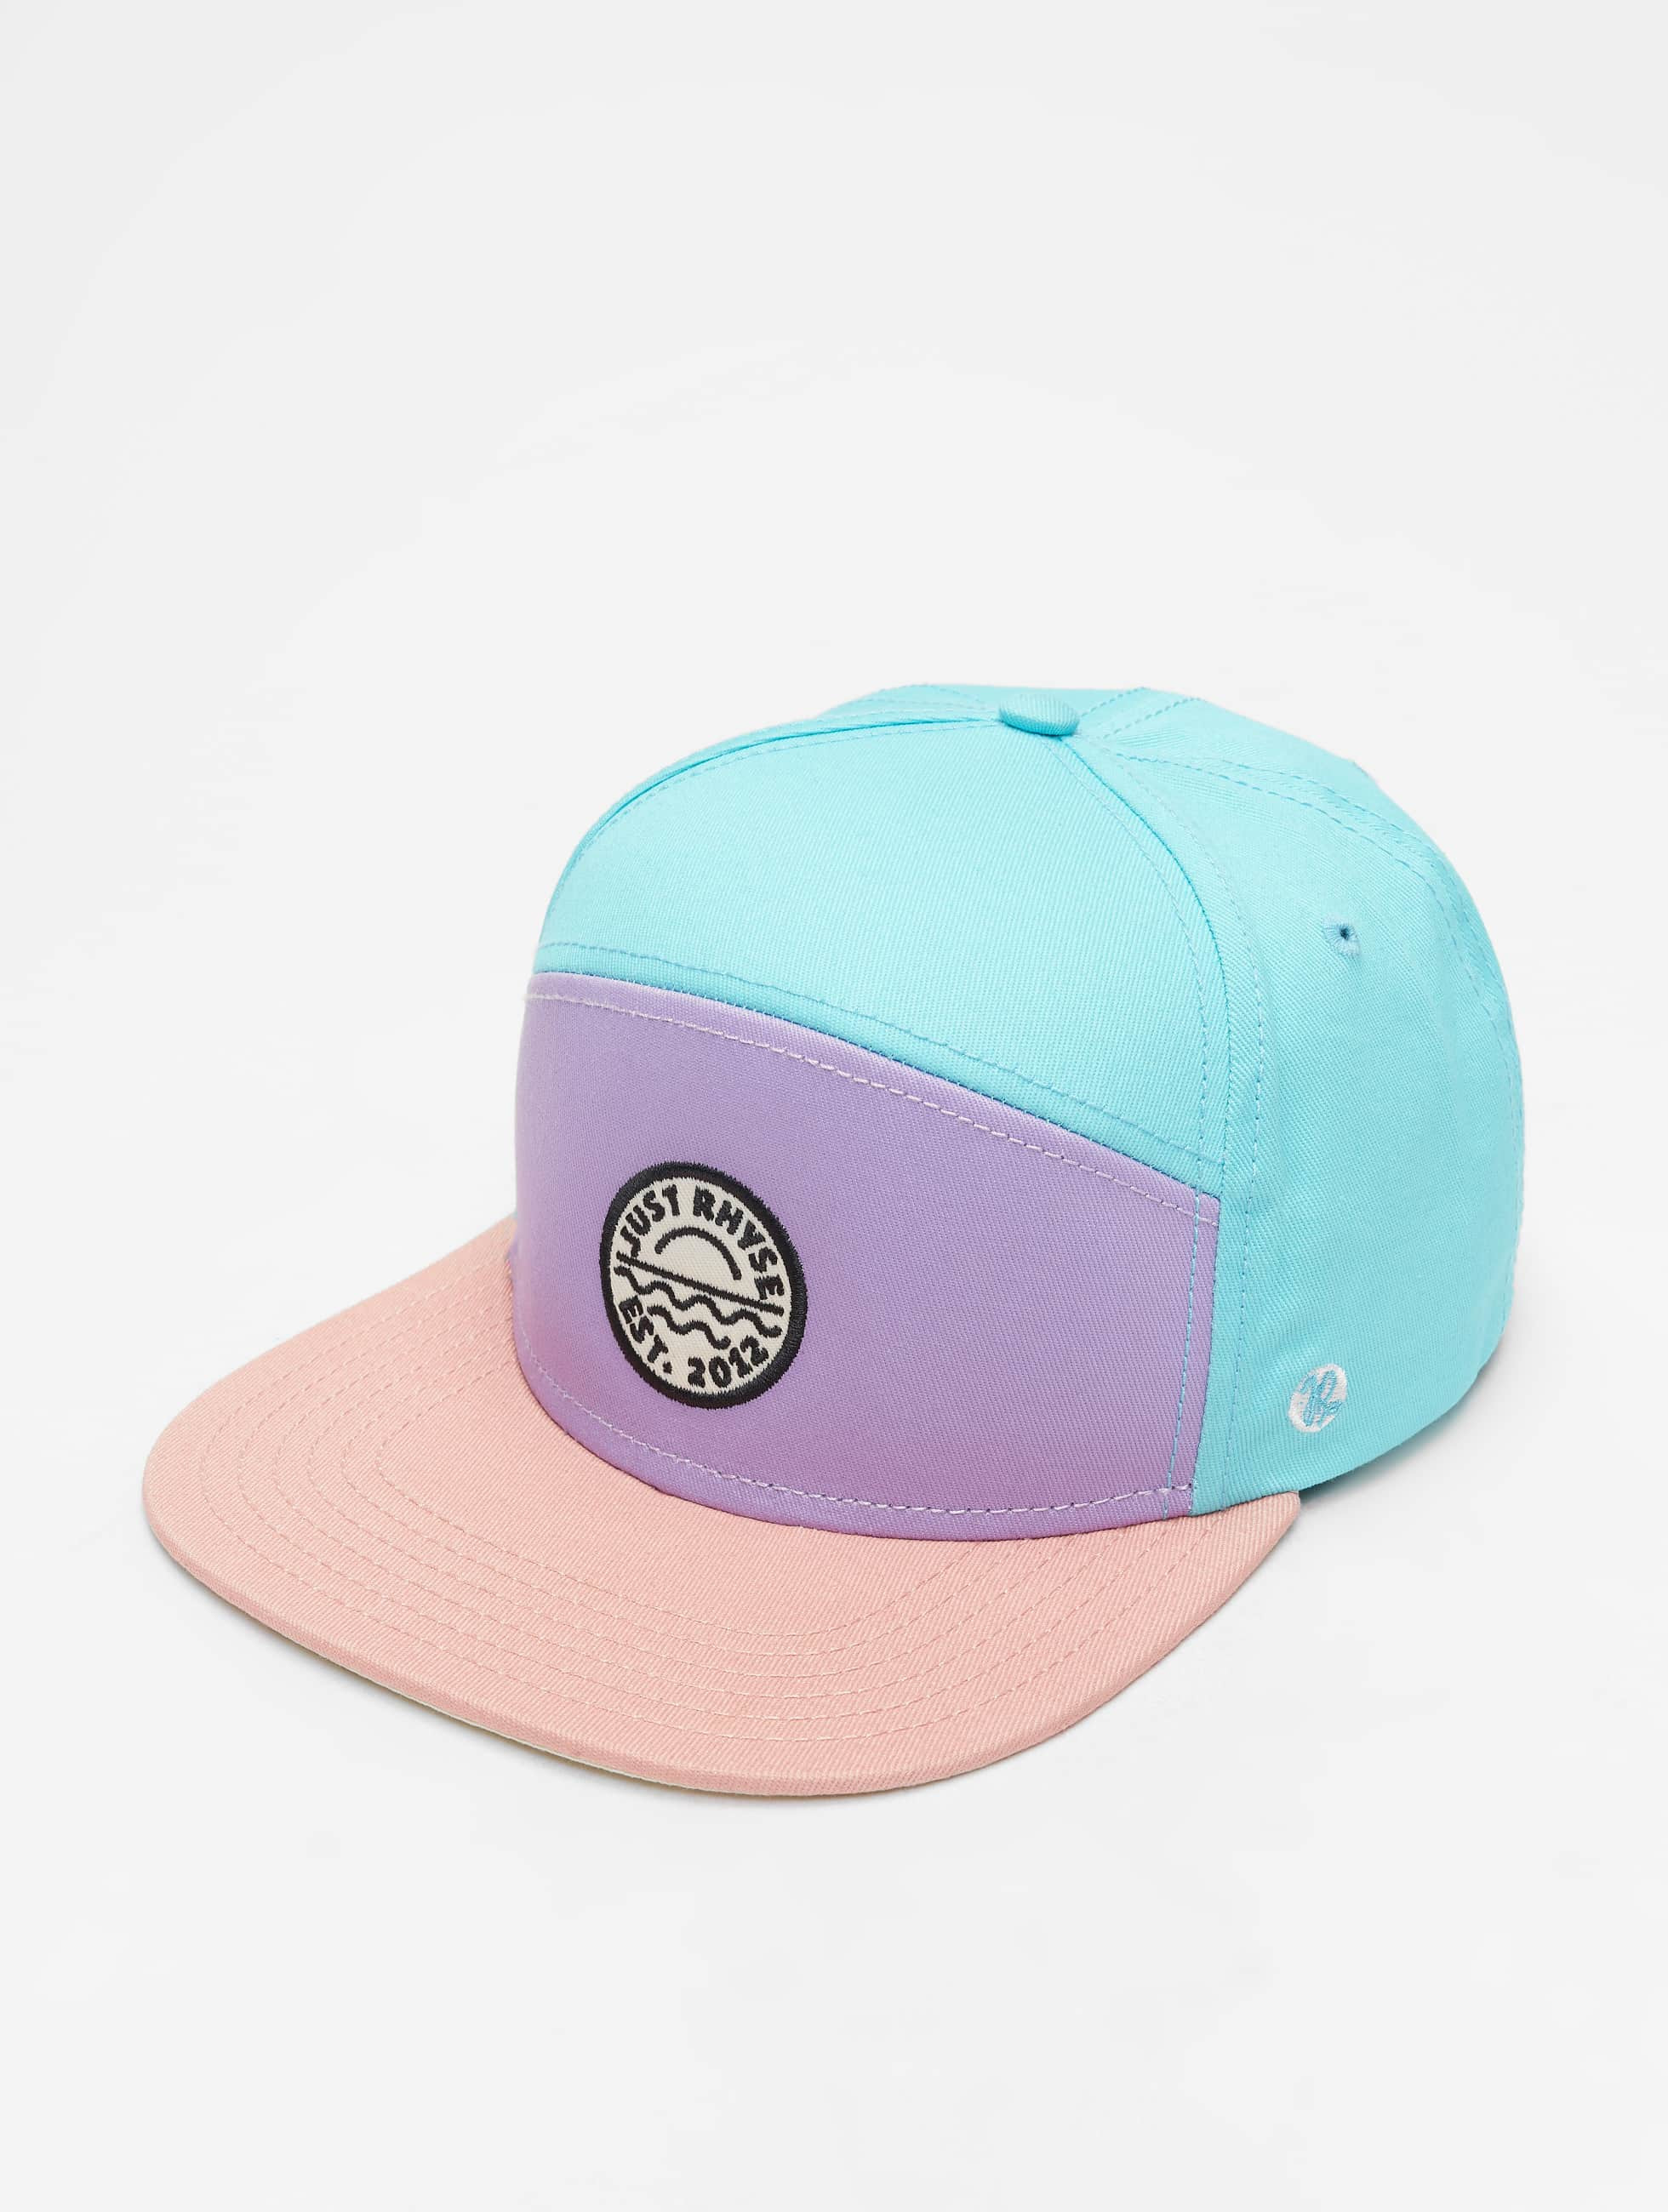 Just Rhyse / Fitted Cap Vero Beach in colored Adjustable